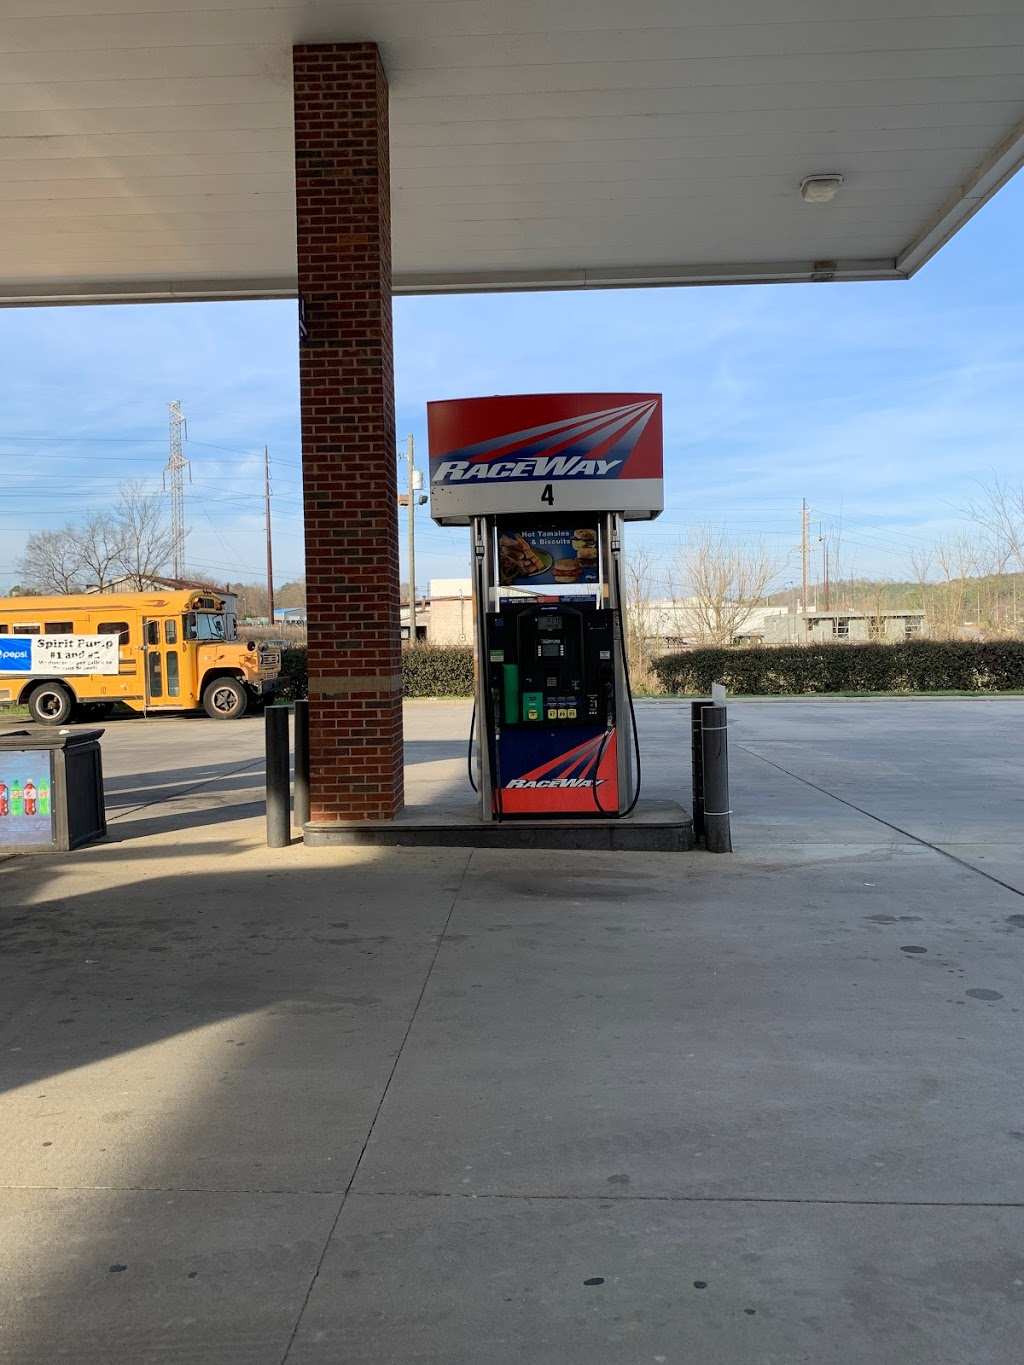 Raceway - gas station  | Photo 1 of 5 | Address: 2460 Pinson Valley Pkwy #2013, Birmingham, AL 35217, USA | Phone: (205) 841-7171